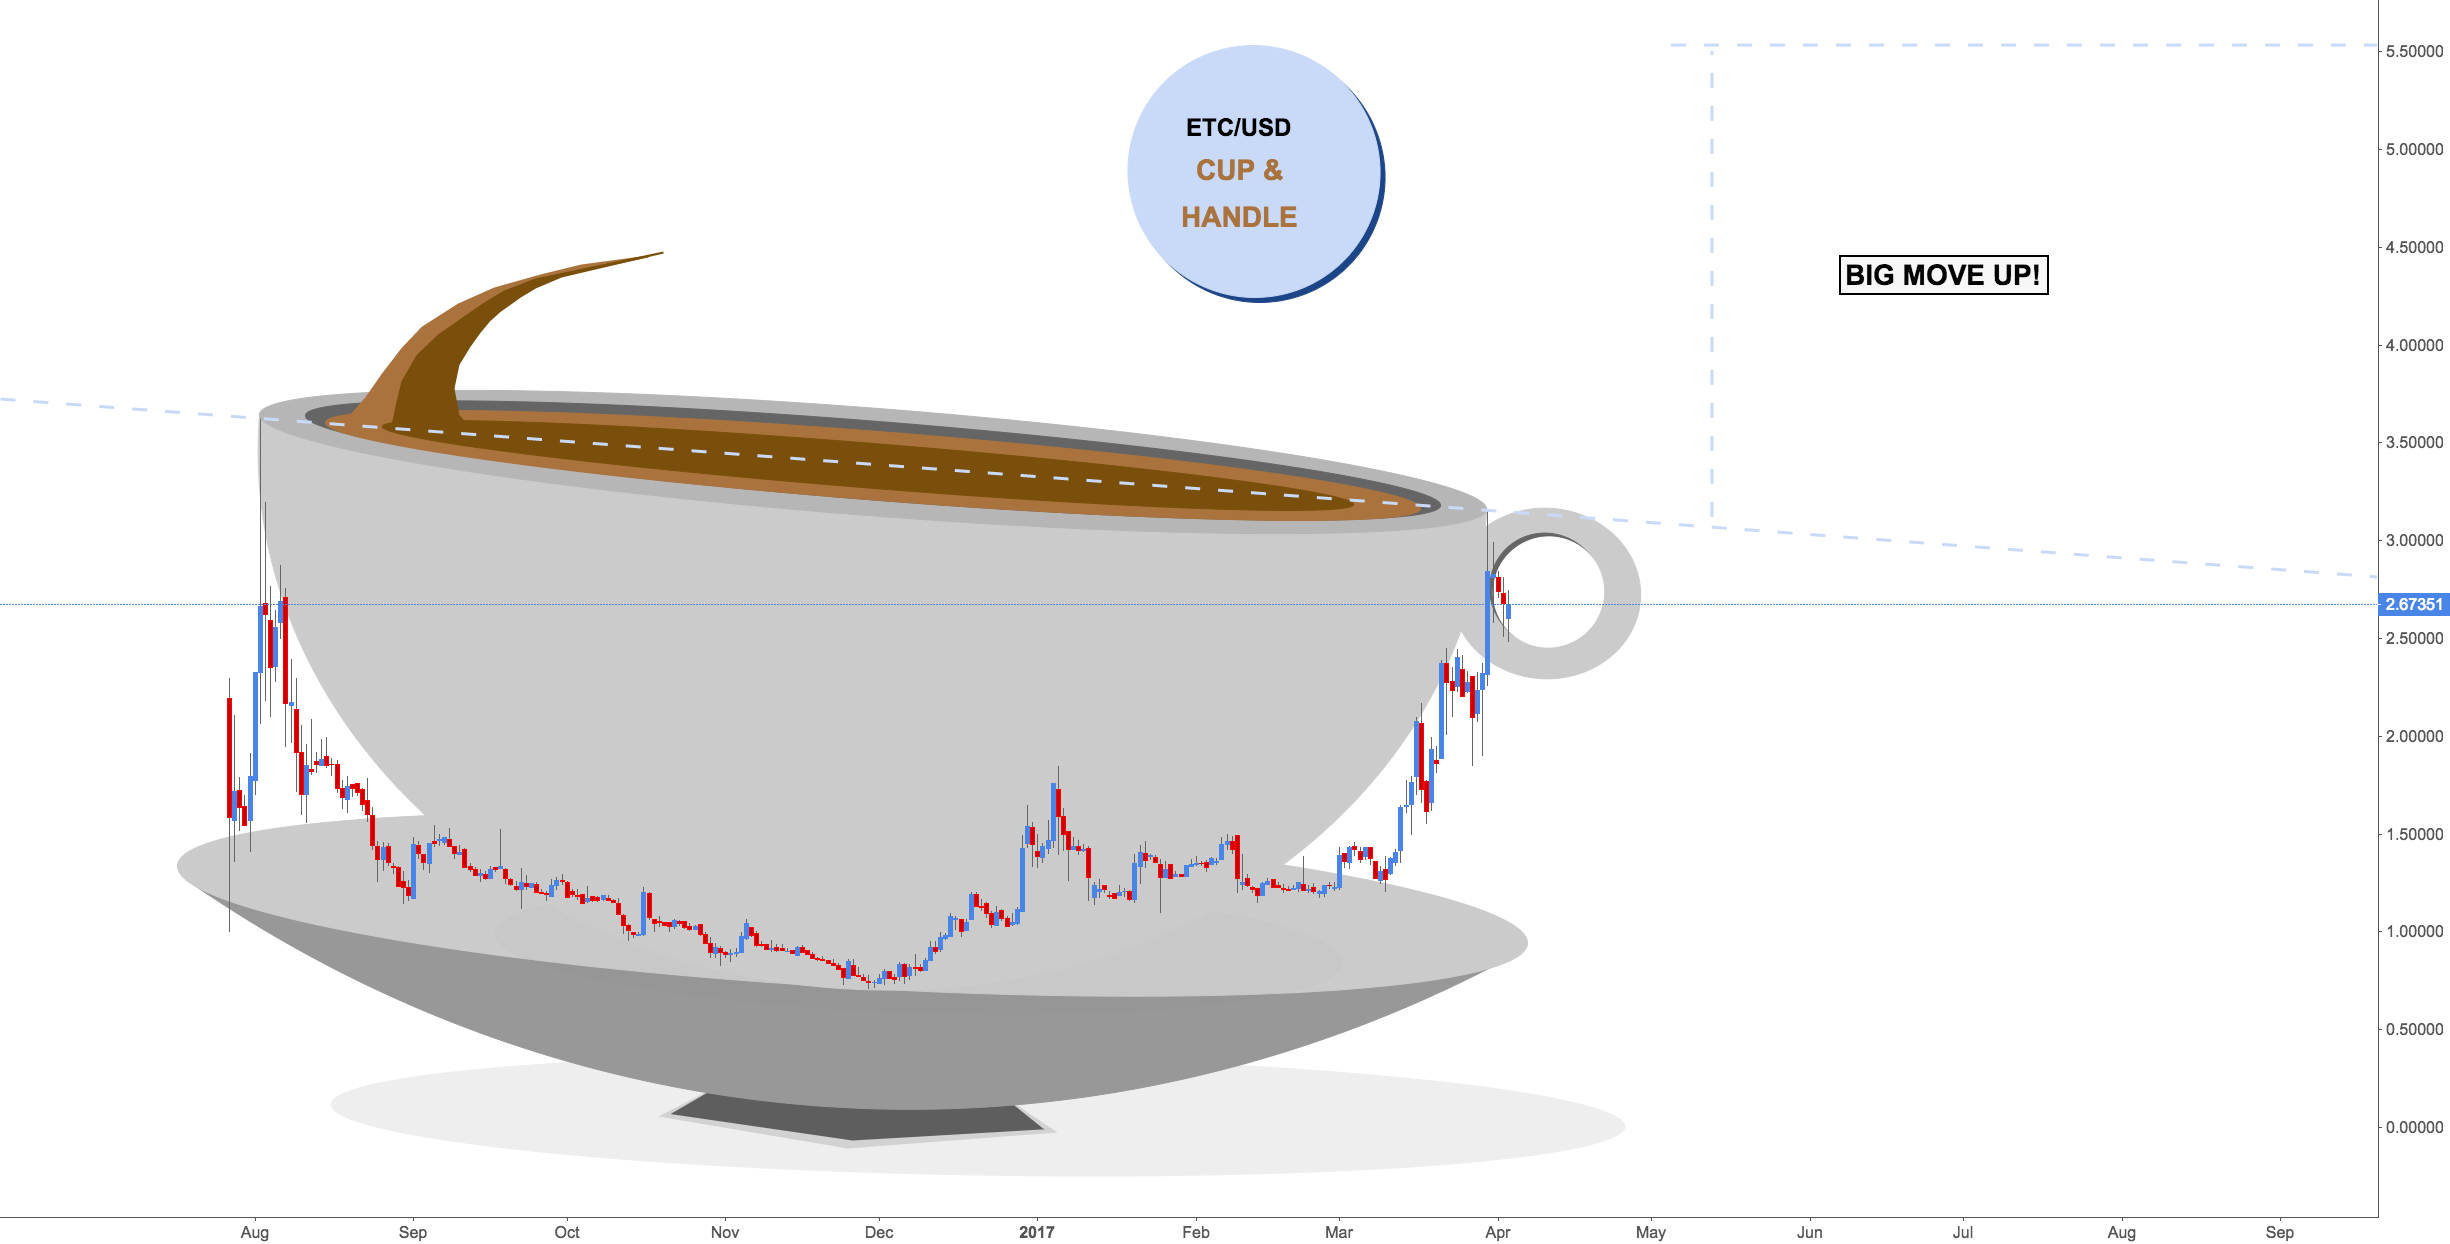 ETC/USD - Cup and Handle